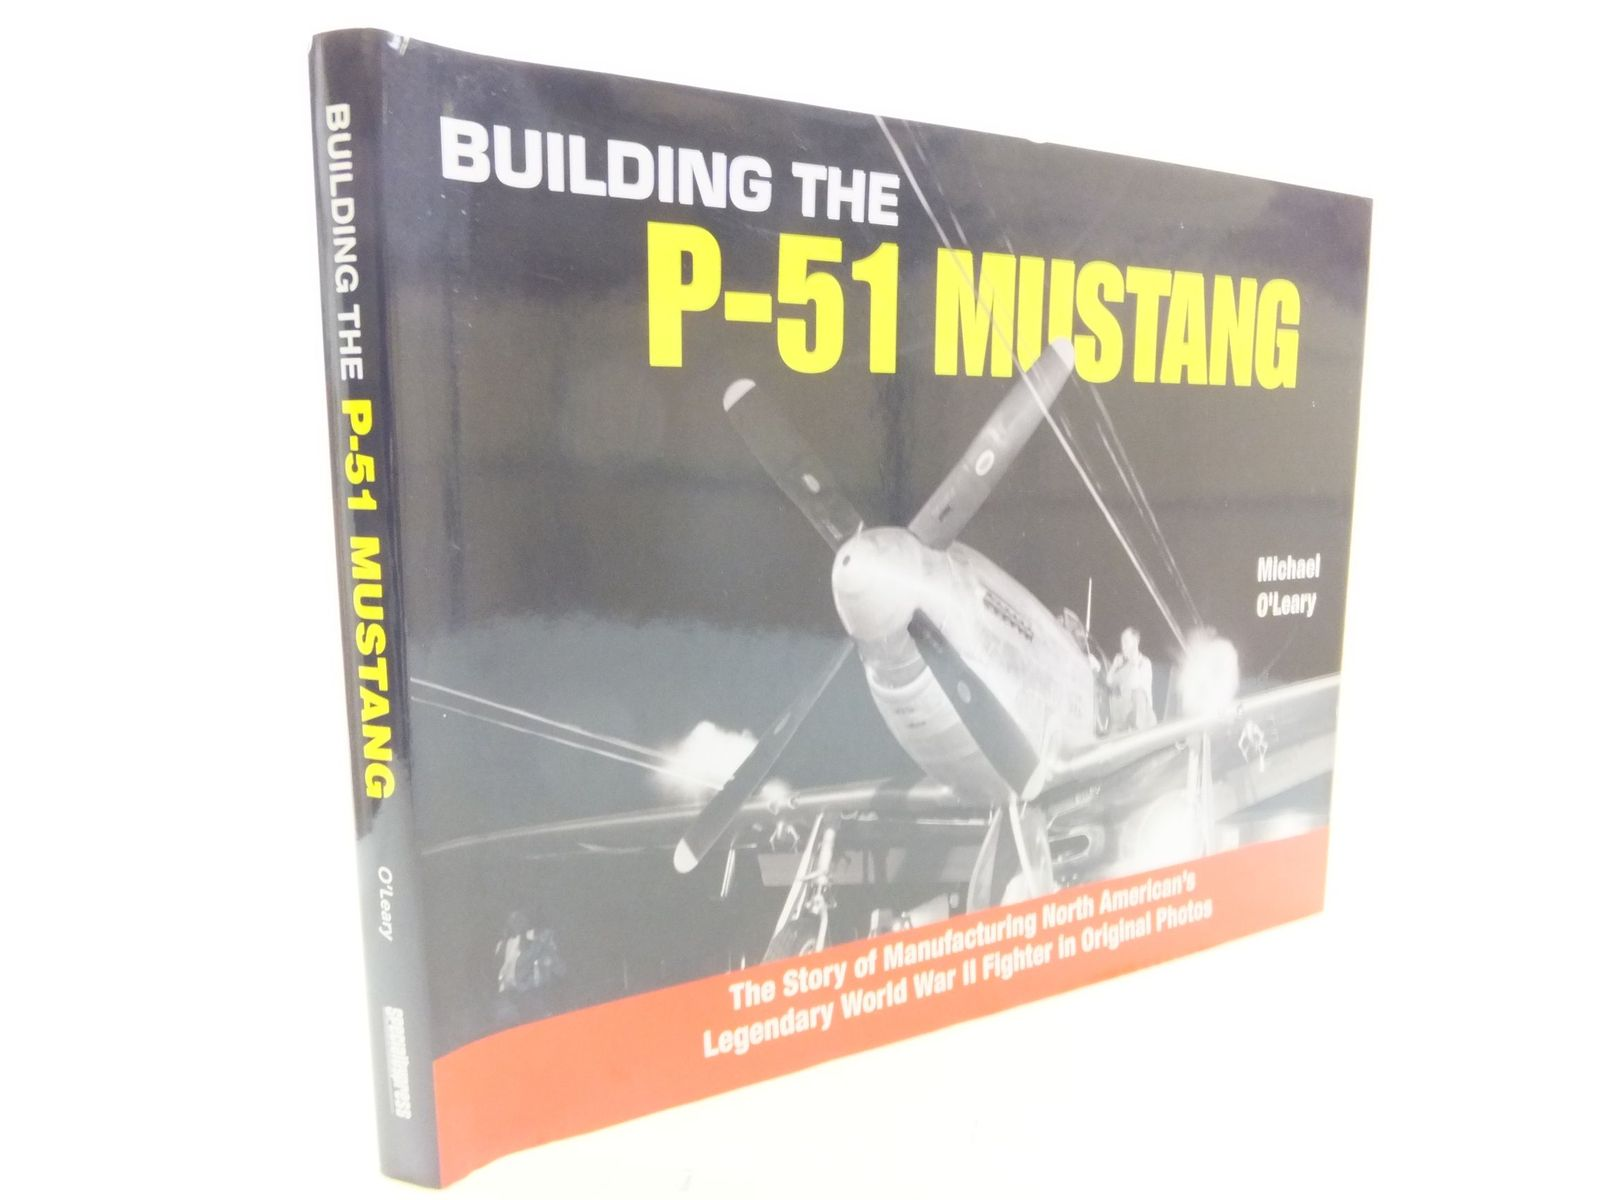 Photo of BUILDING THE P-51 MUSTANG written by O'Leary, Michael published by Speciality Press (STOCK CODE: 2114656)  for sale by Stella & Rose's Books